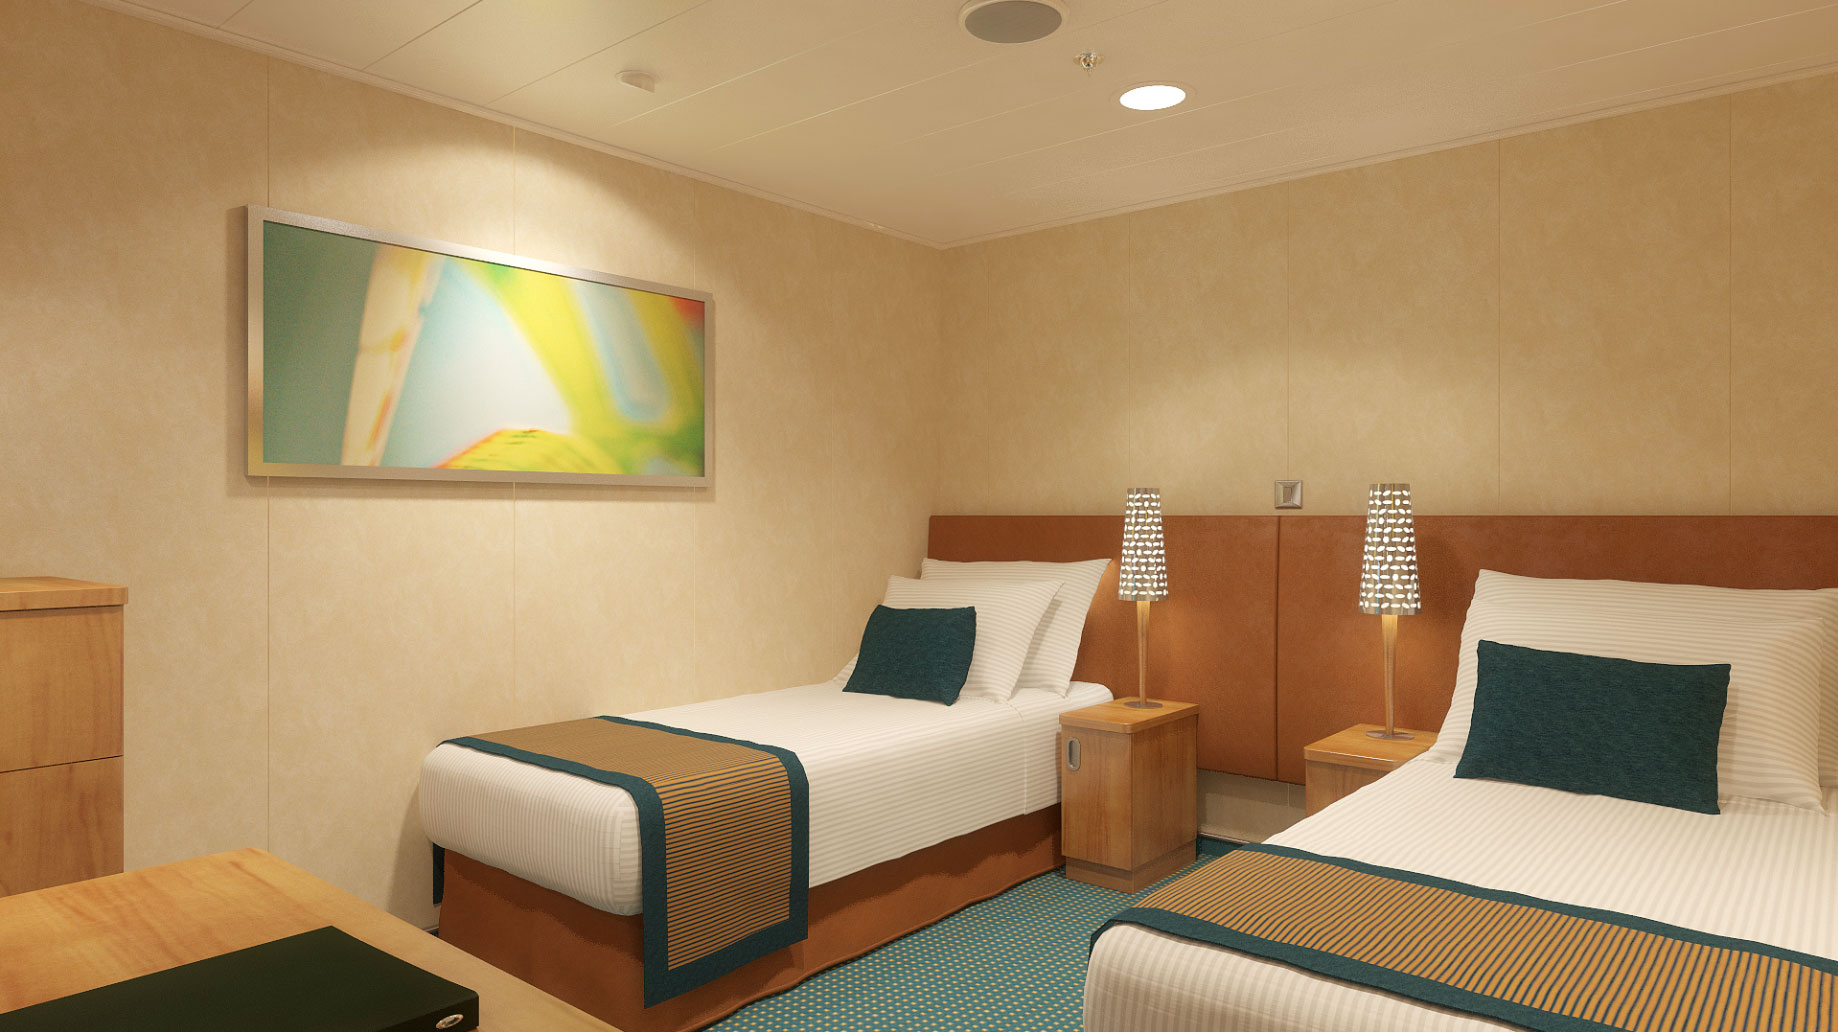 Carnival Cruise Rooms For 3 2018  Punchaoscom